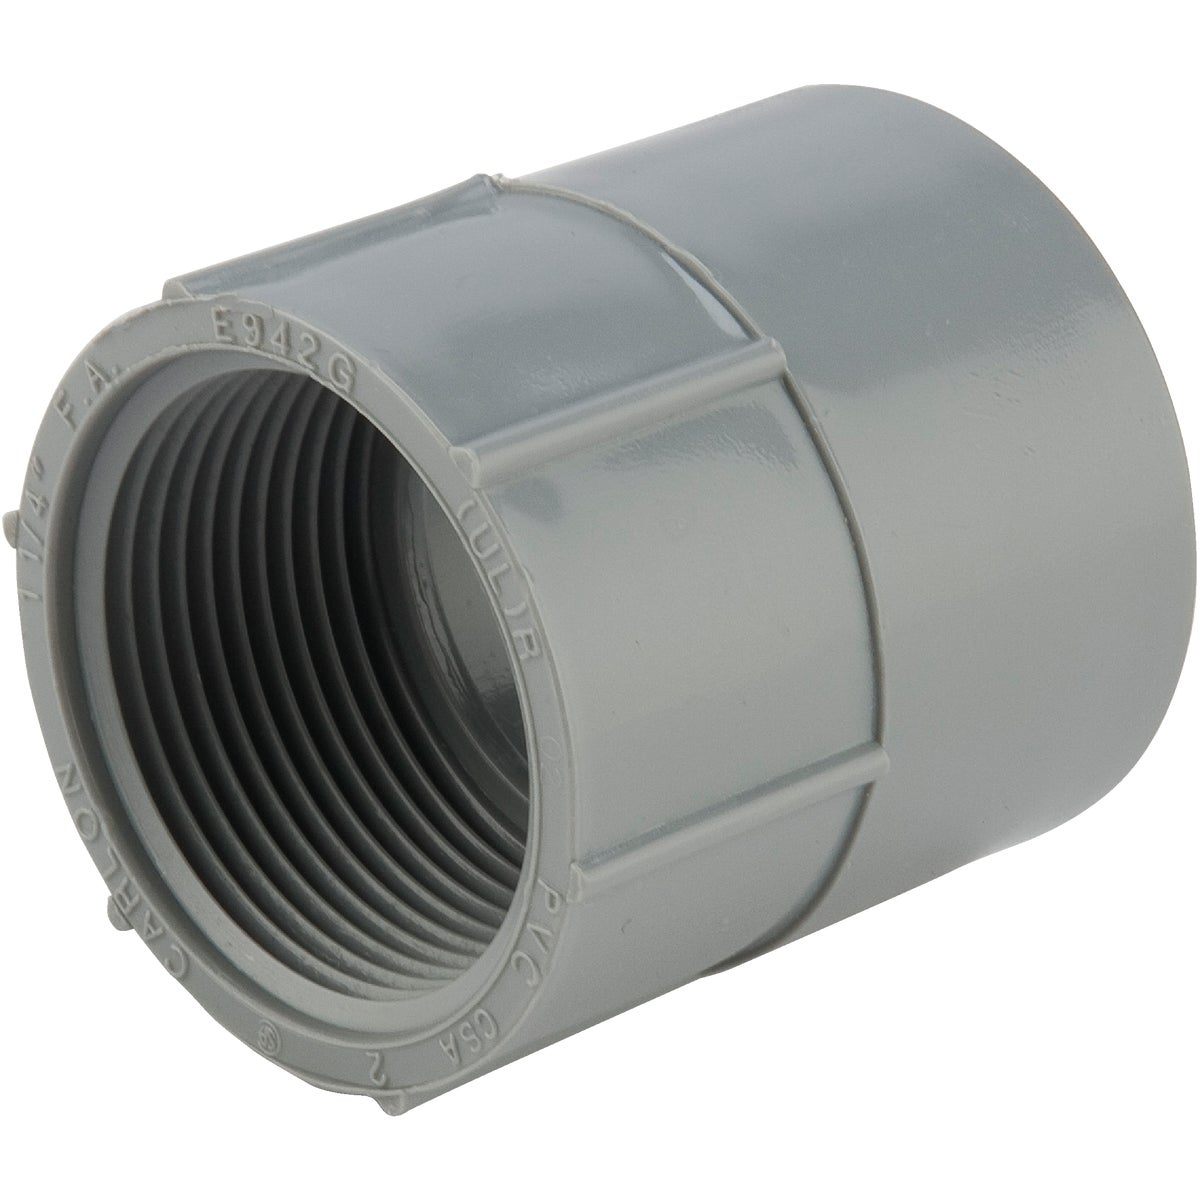 "1-1/4"" FEMALE ADAPTER - E942GR by Thomas & Betts"